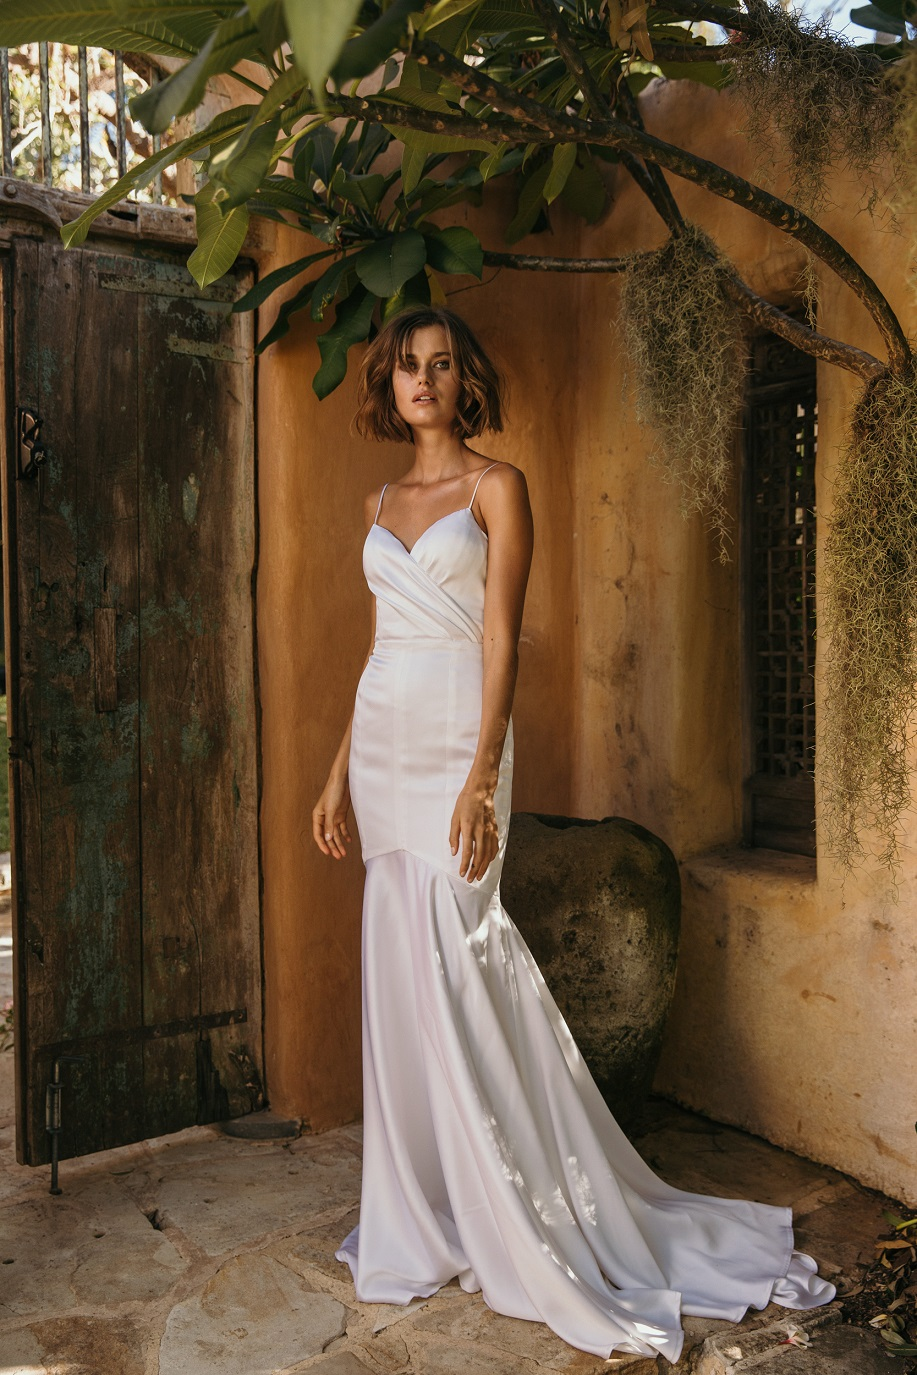 The Wanderlust Gown